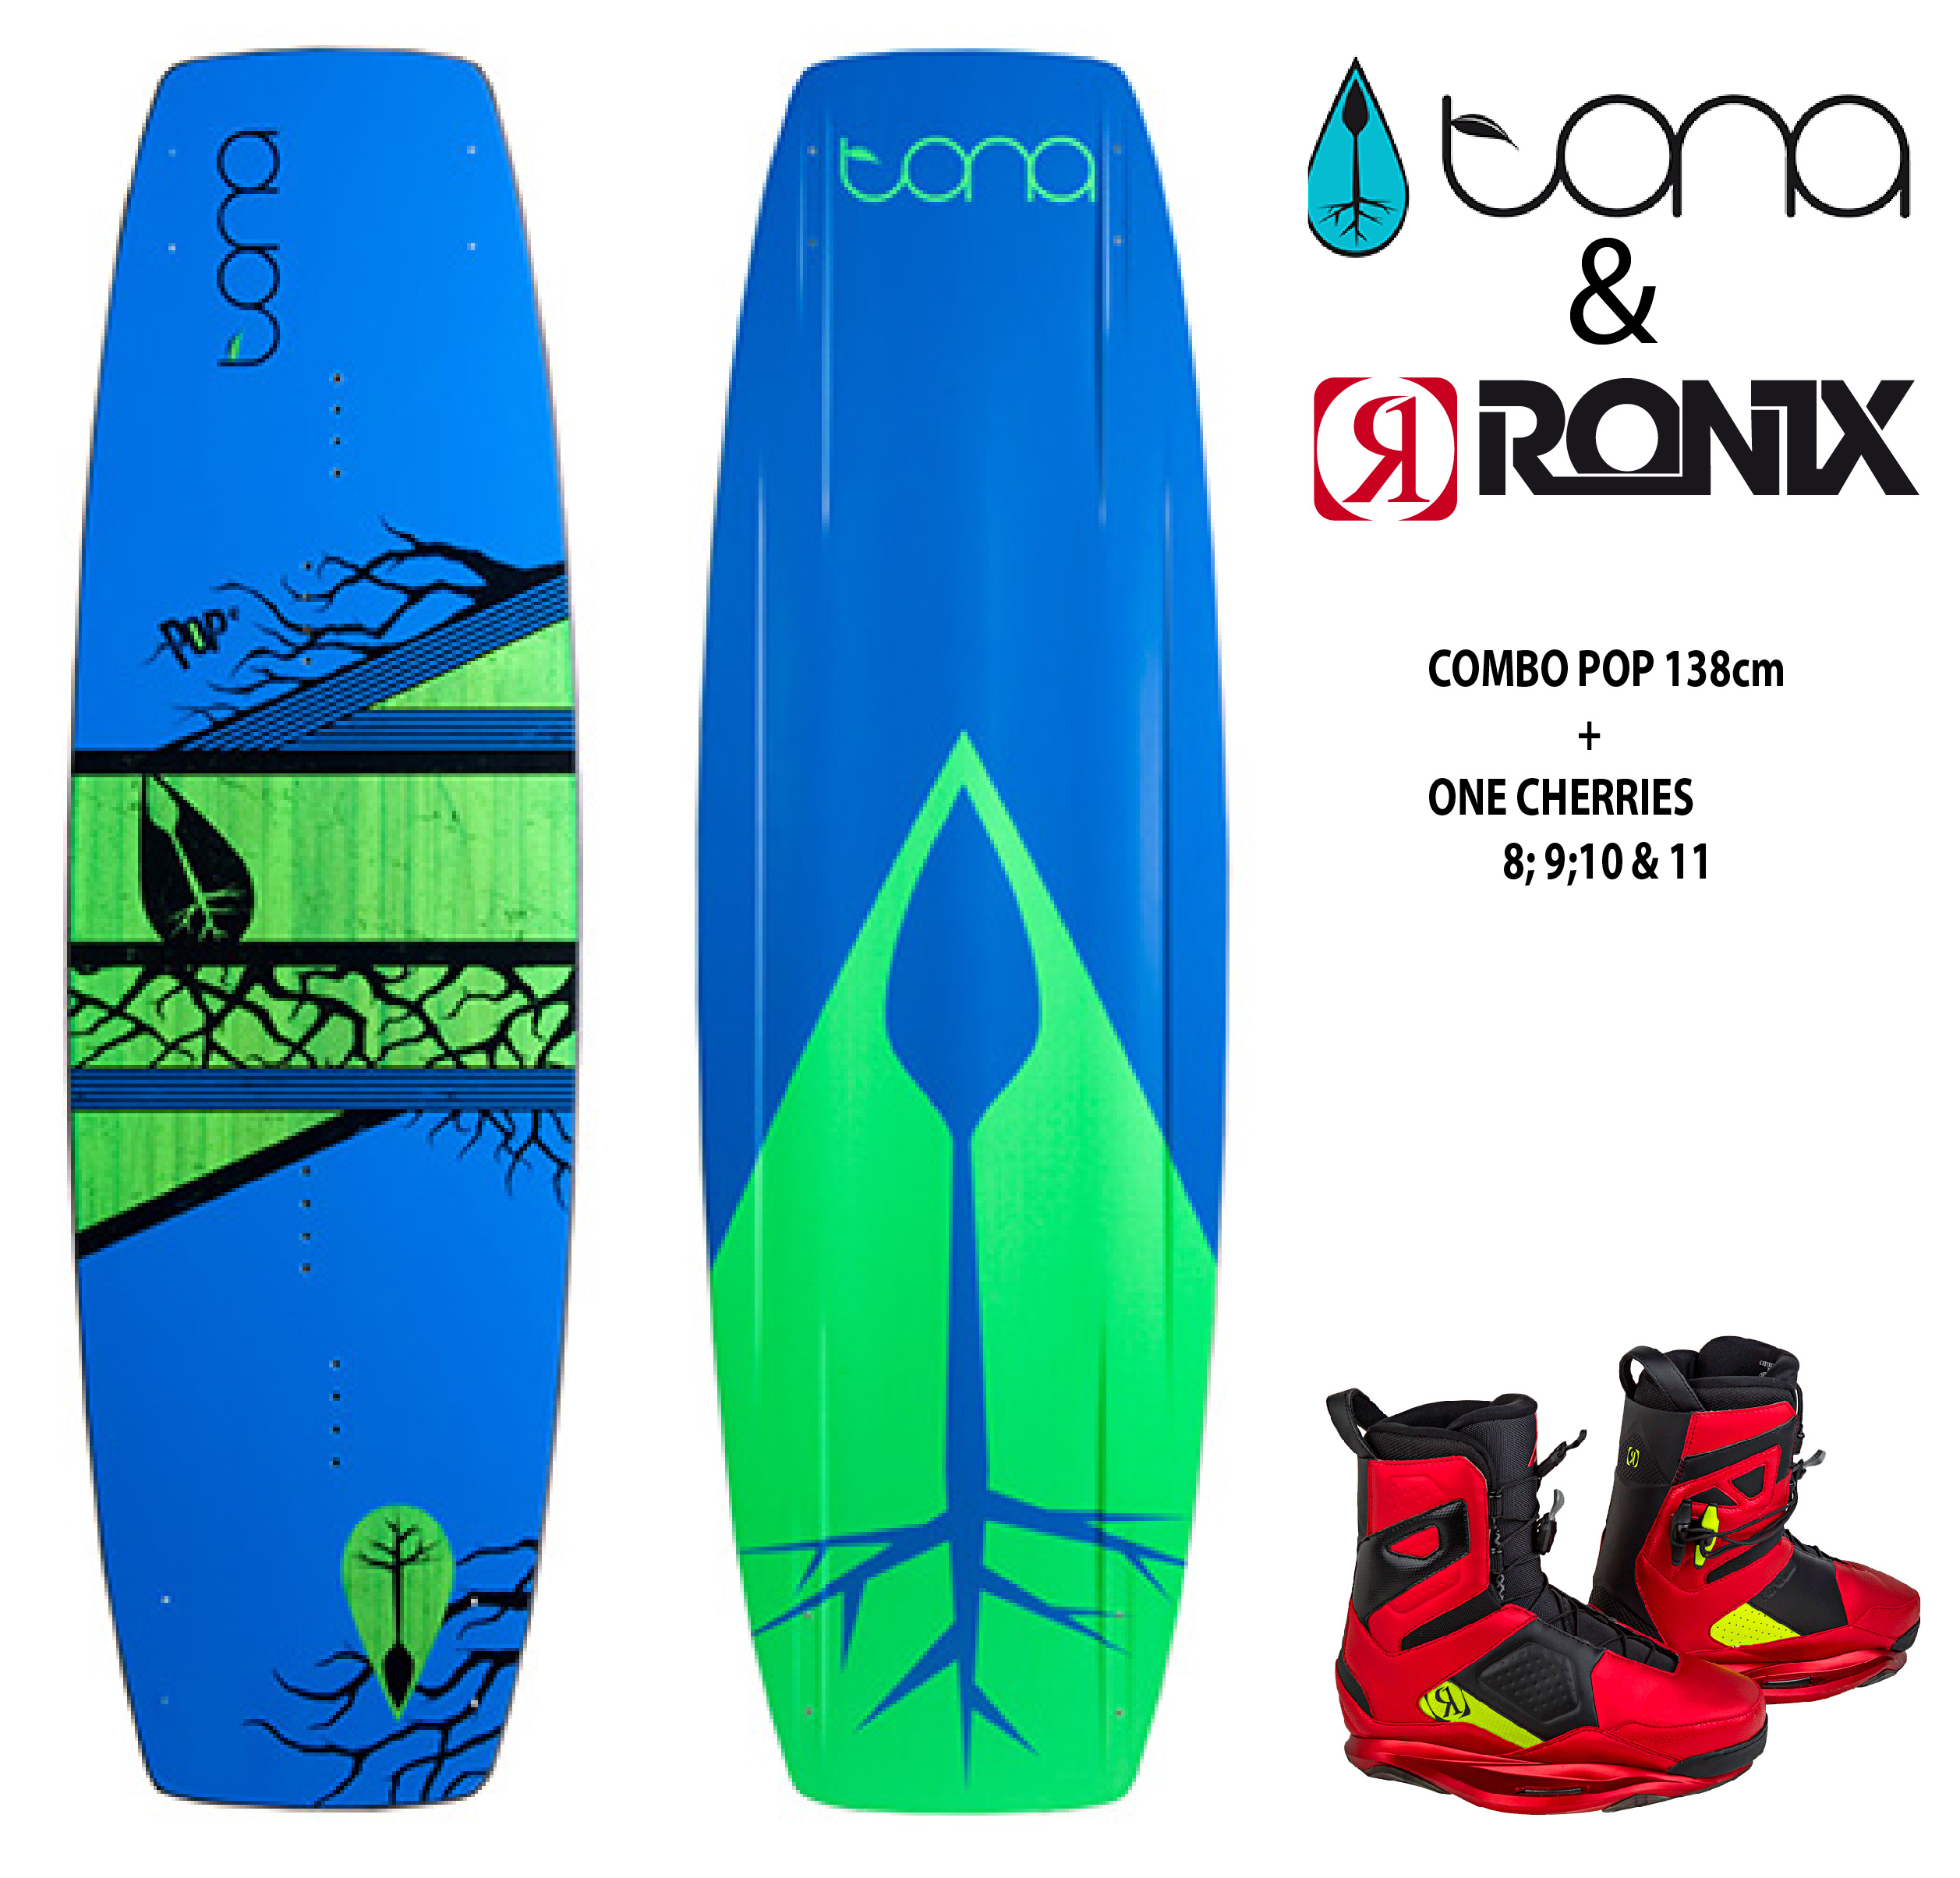 Combo Tona Pop 138cm c/Ronix One Cherries